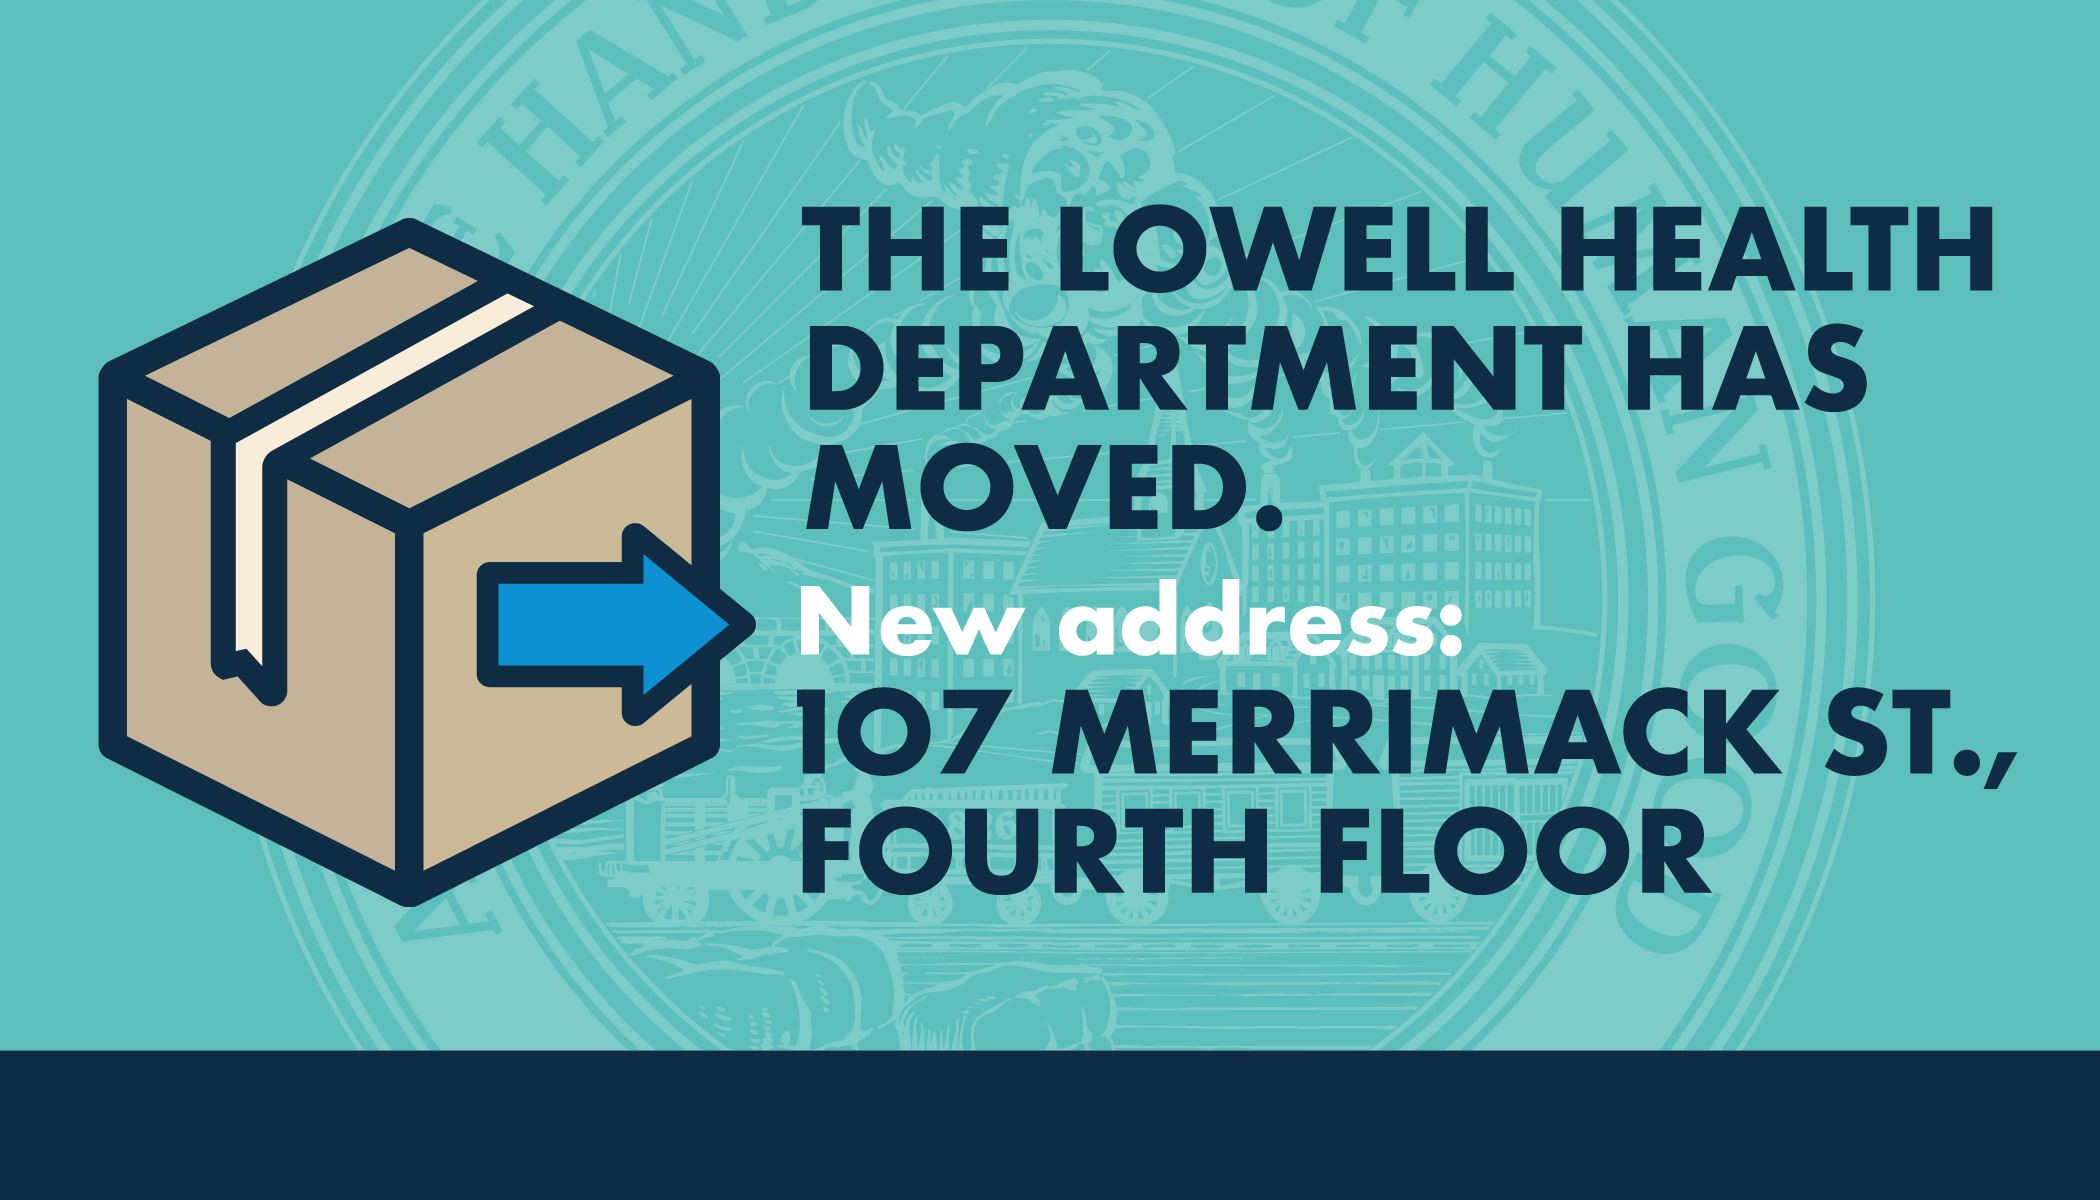 Health Department Move Graphic-01